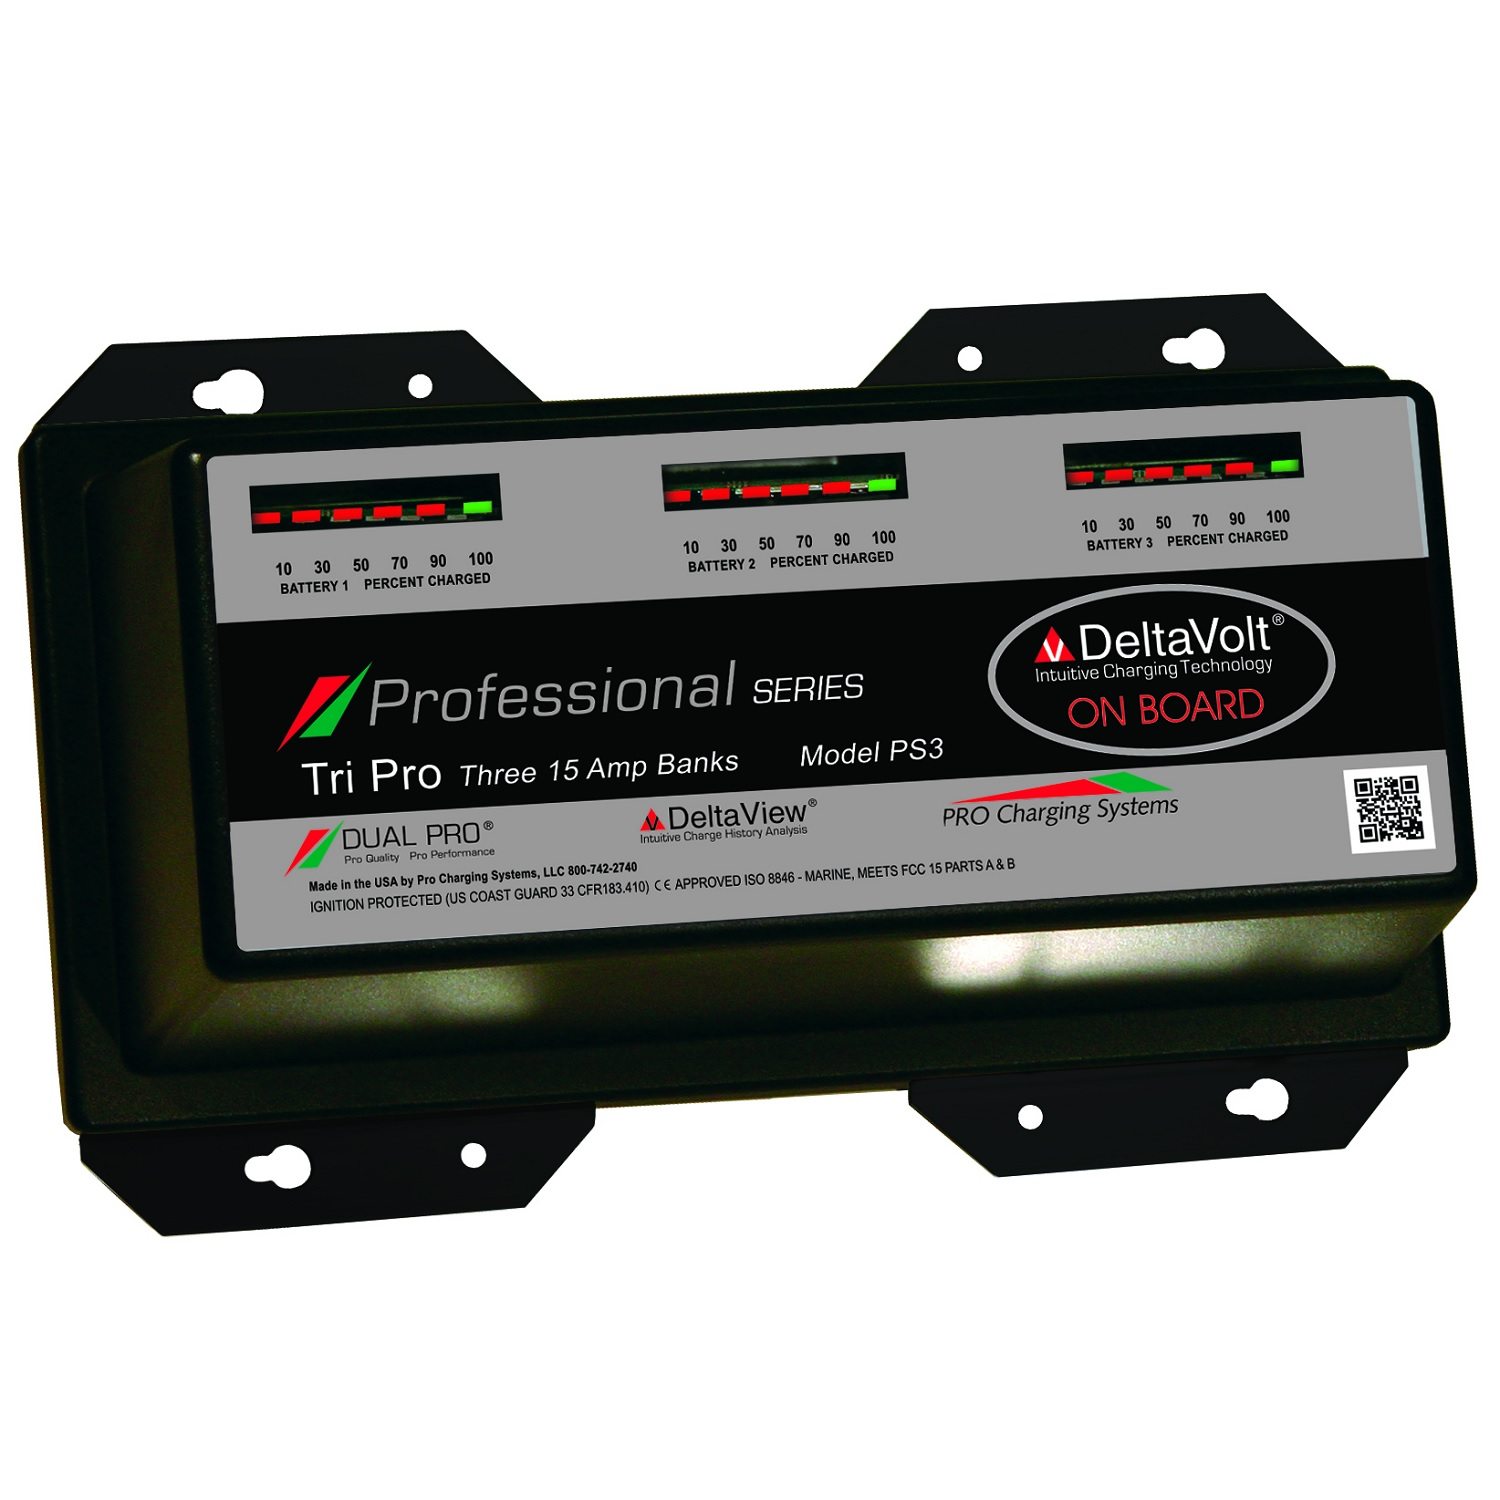 Dual Pro Professional Series 3 Bank Charger 15 AMP/Bank PS3